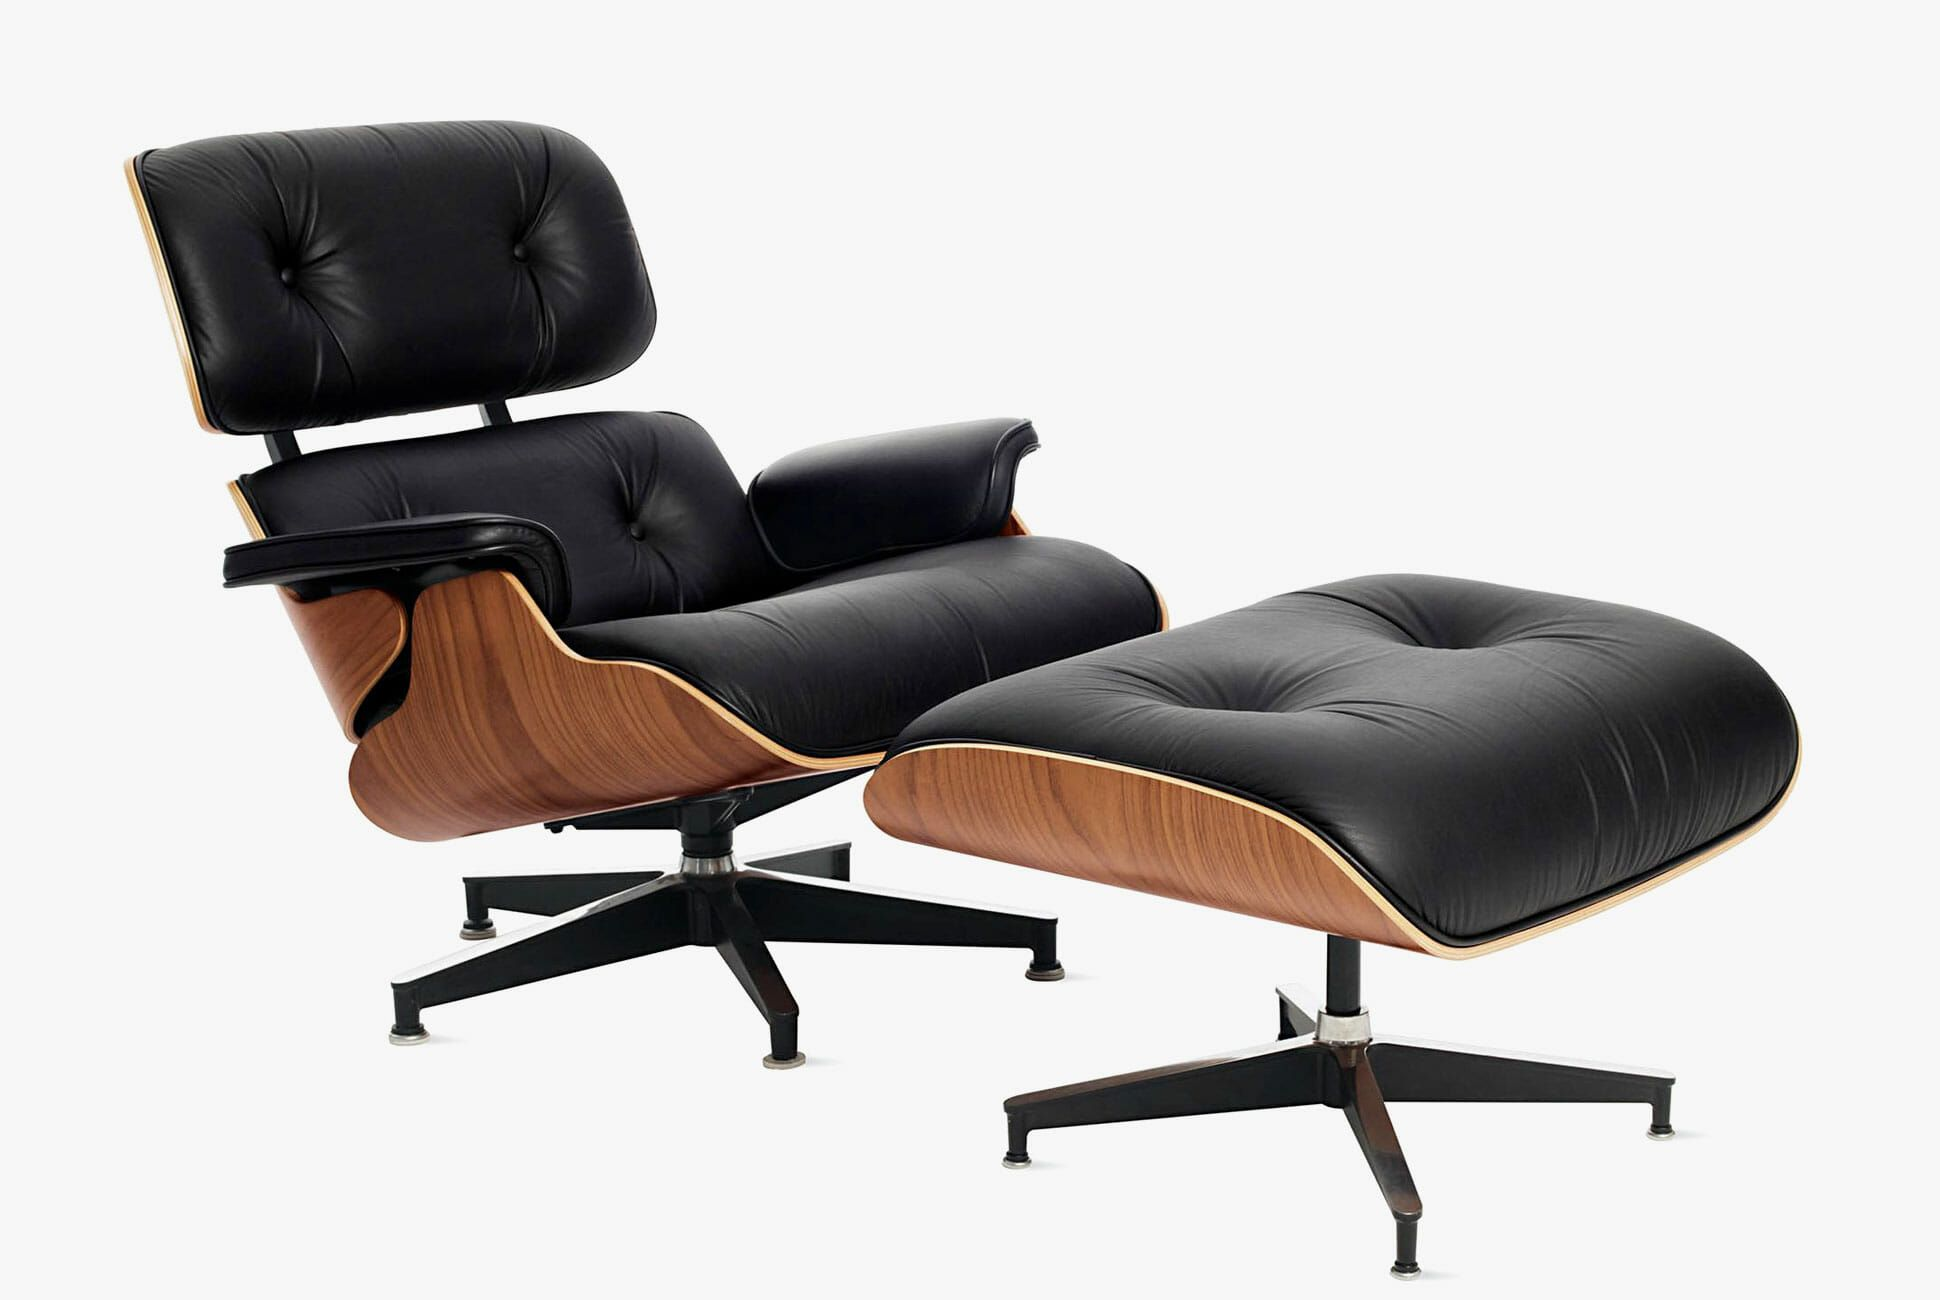 Surprising Herman Millers Mid Century Modern Furniture Is 15 Off Short Links Chair Design For Home Short Linksinfo